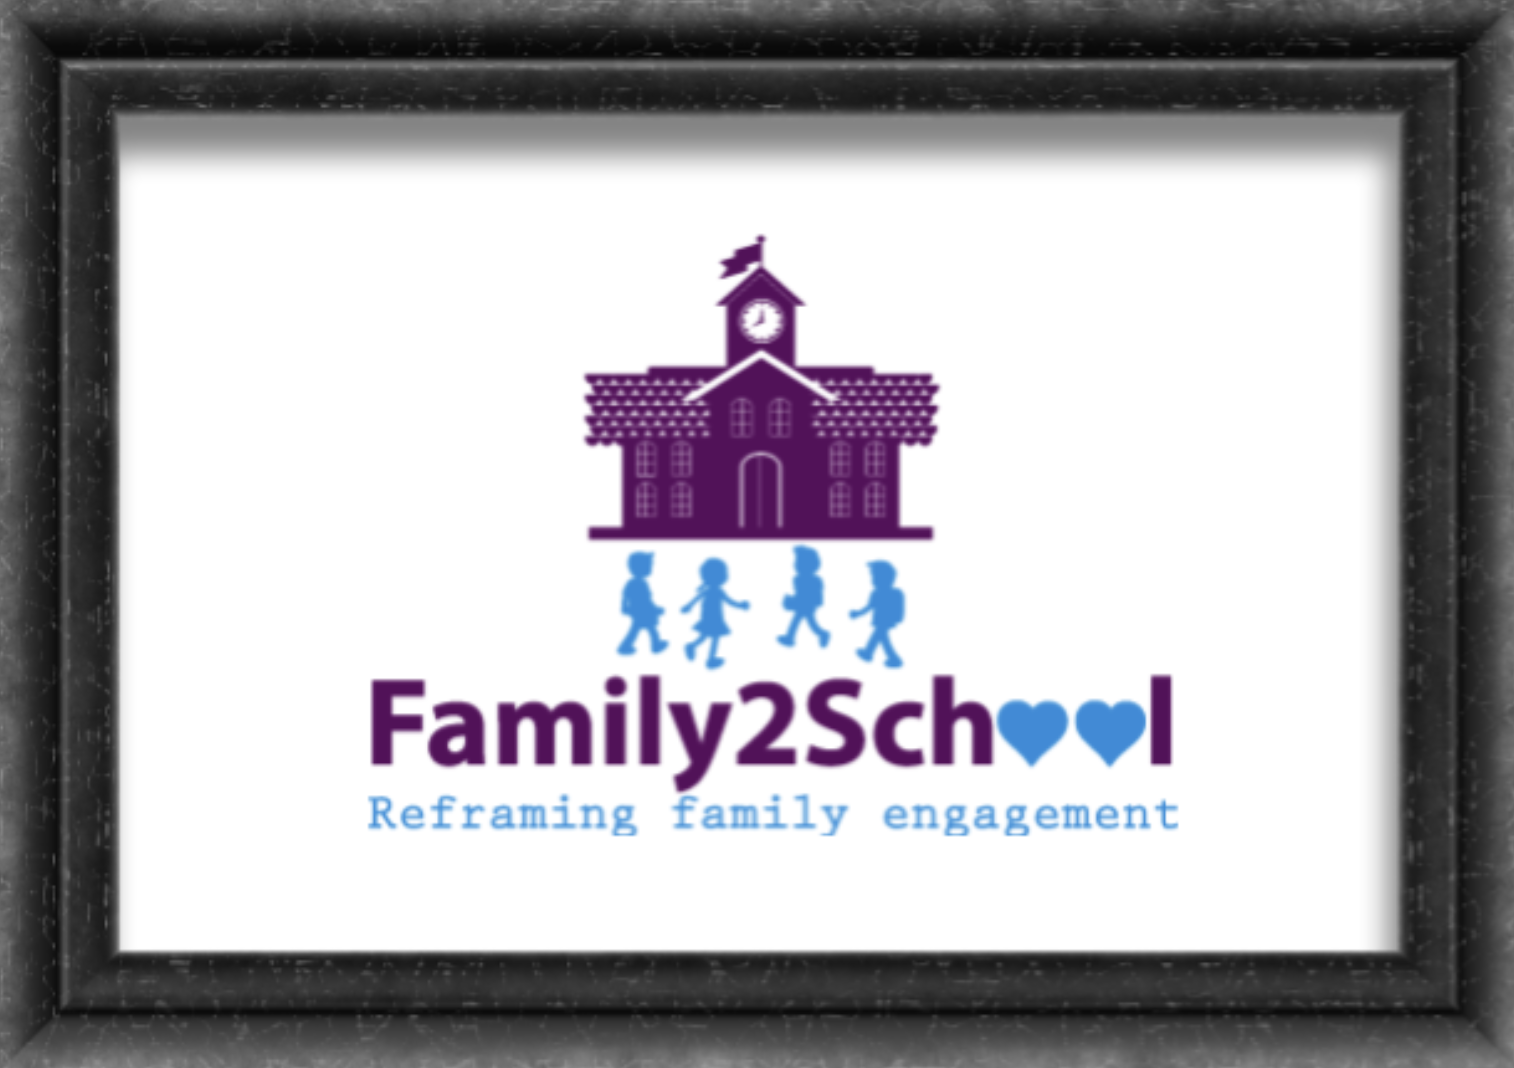 Reframing Family Engagement